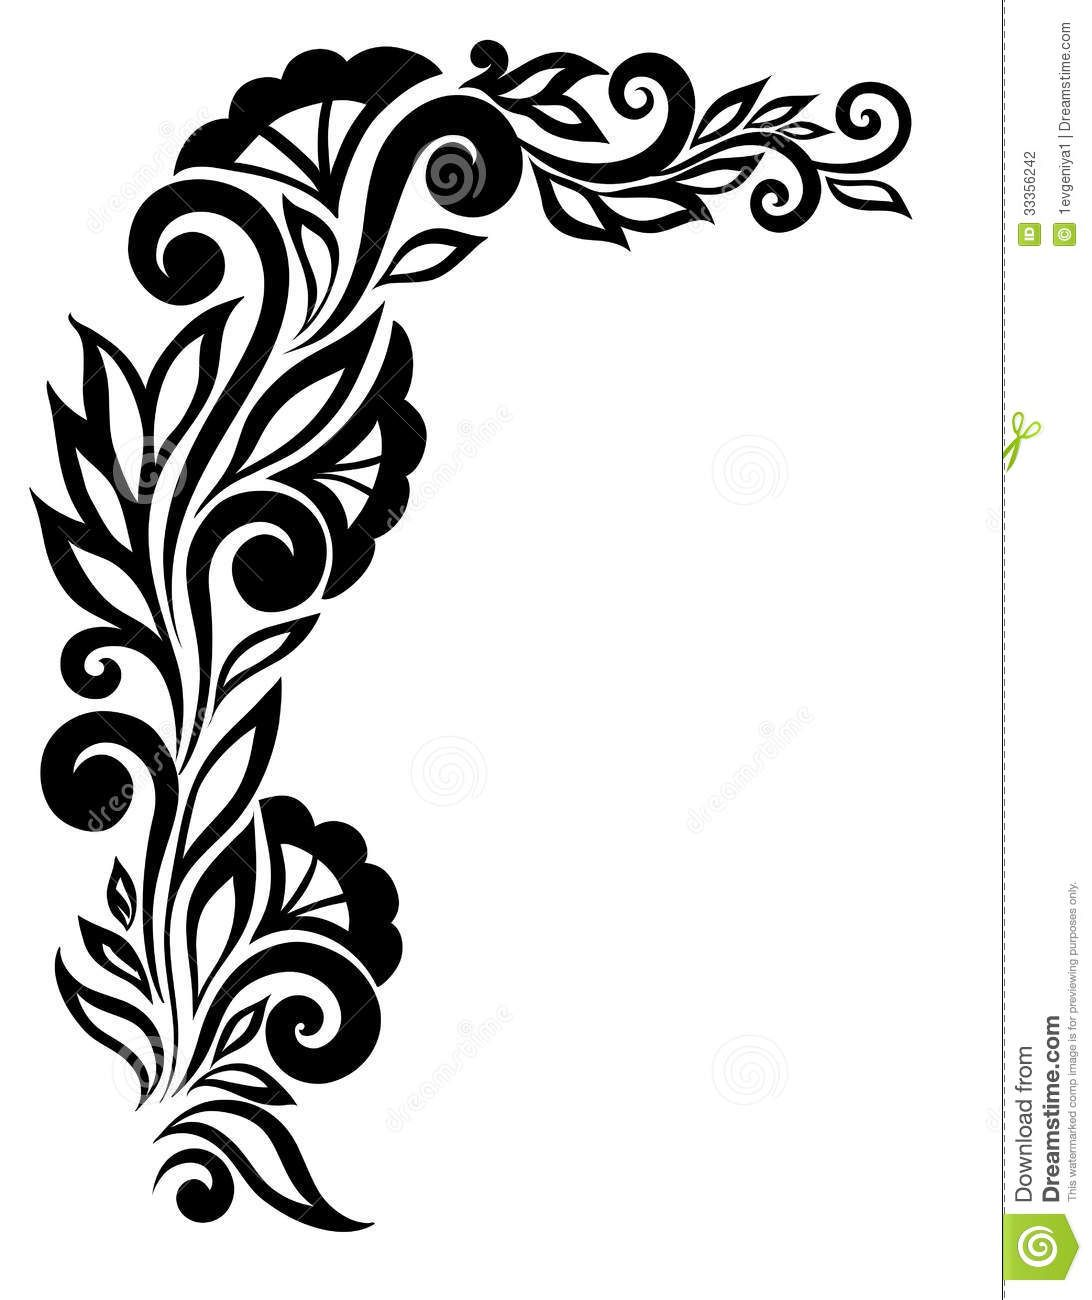 Black And White Border Designs For Projects